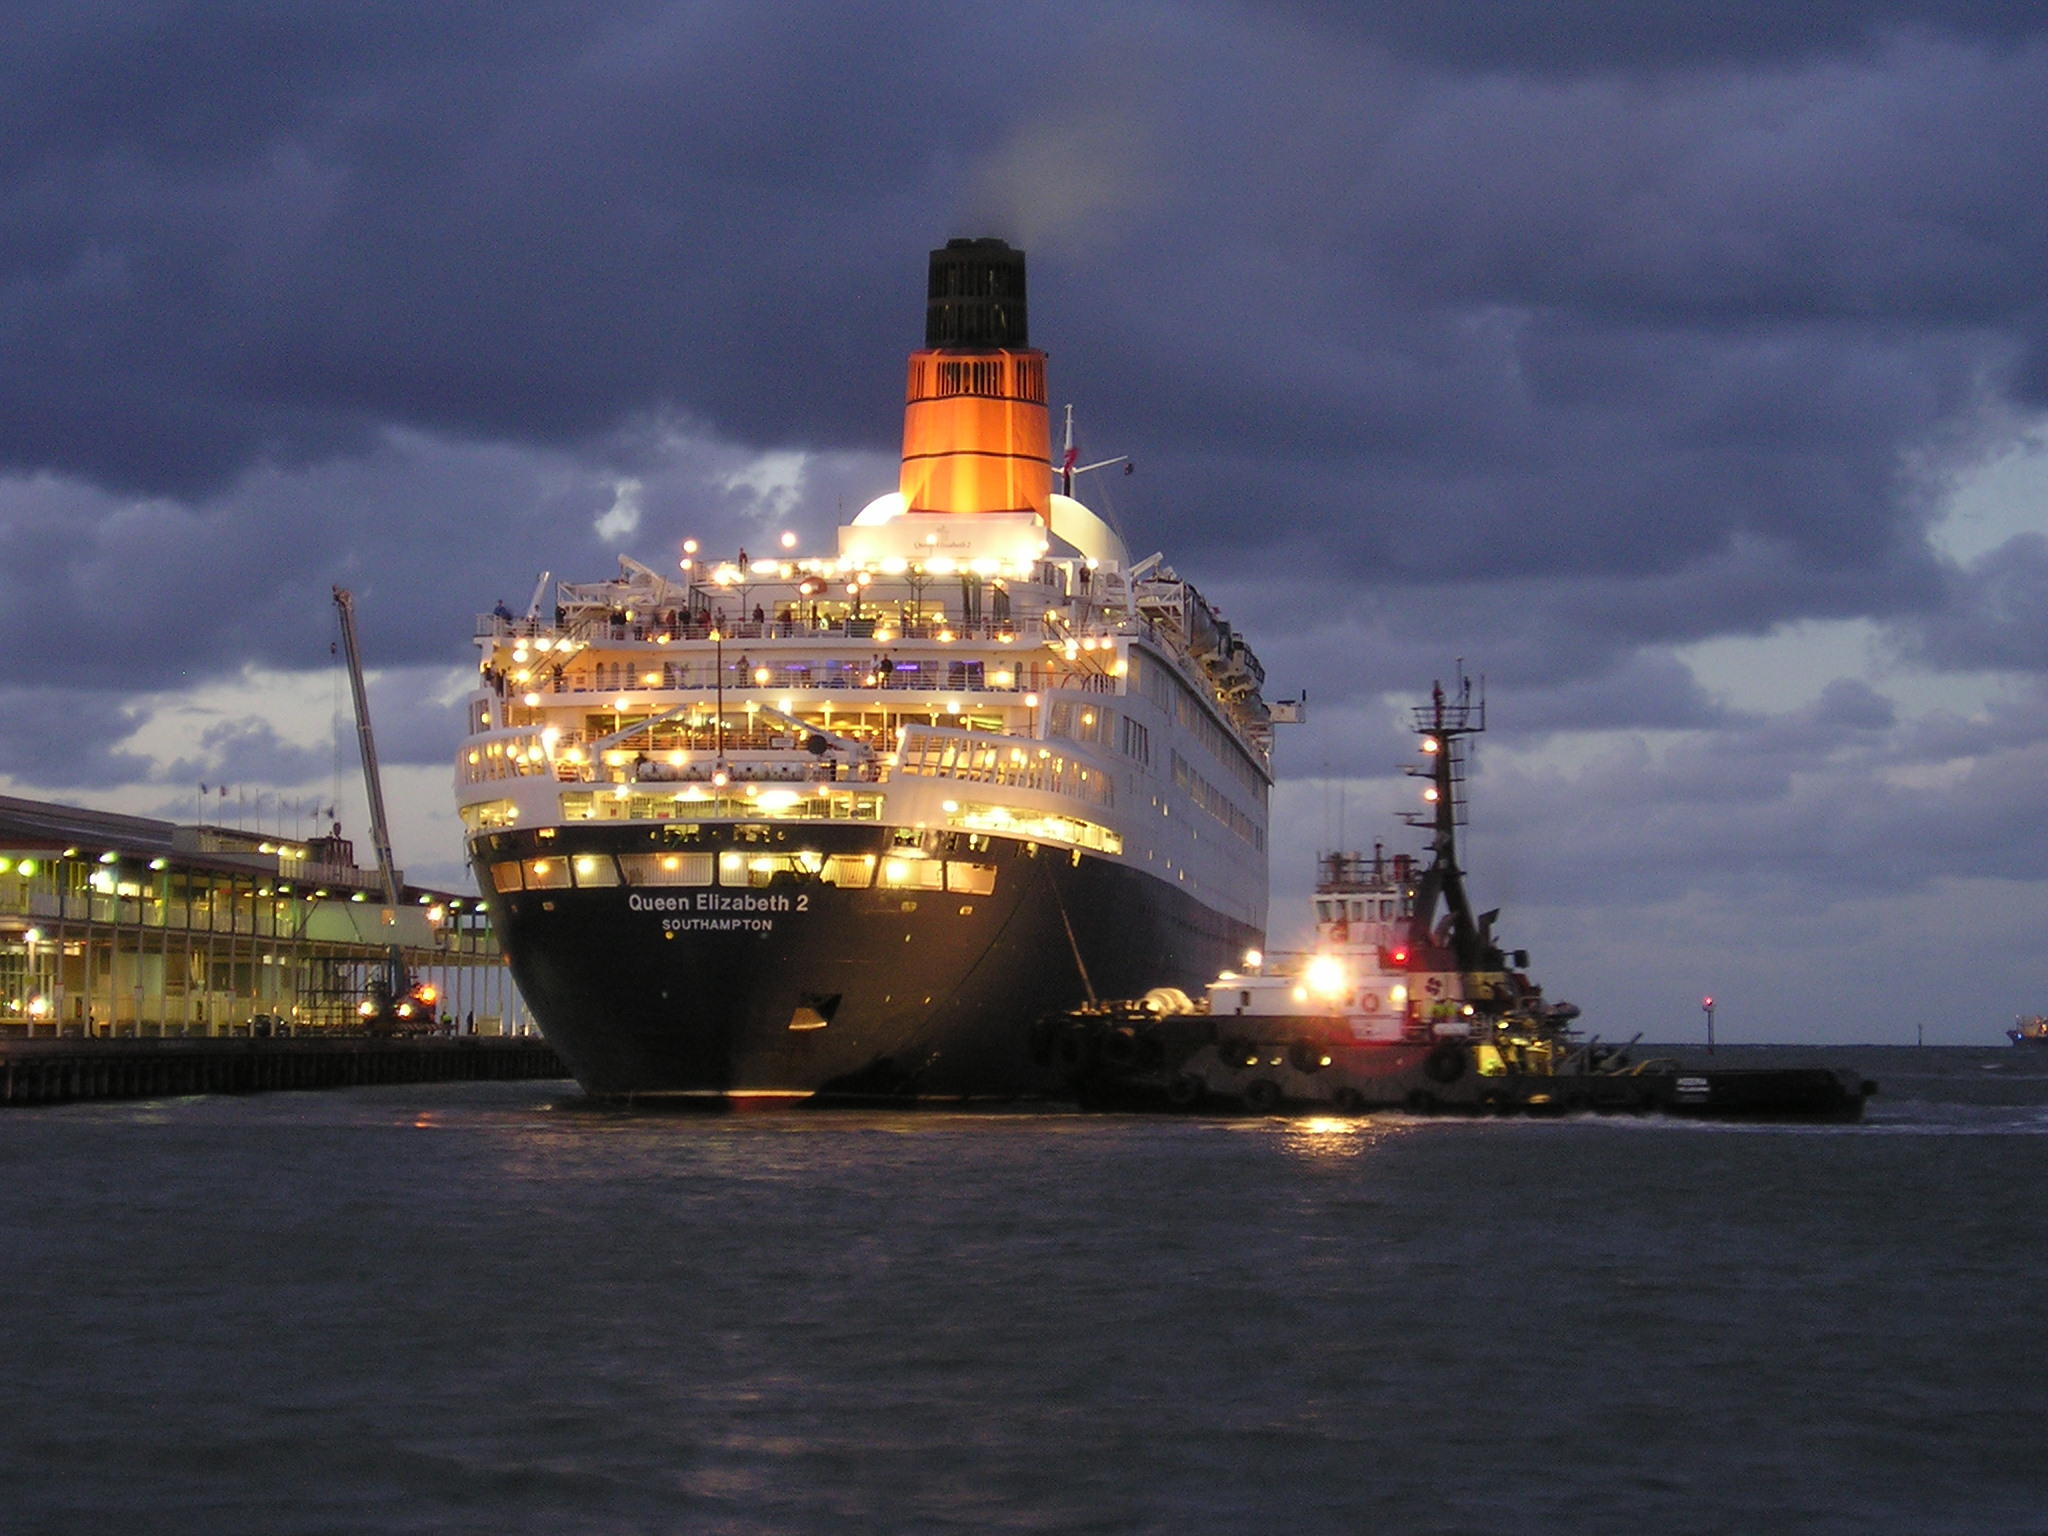 The redesigned funnel as seen in a February 28, 2008, photo of QE2 at Station Pier in Melbourne, Victoria, Australia.